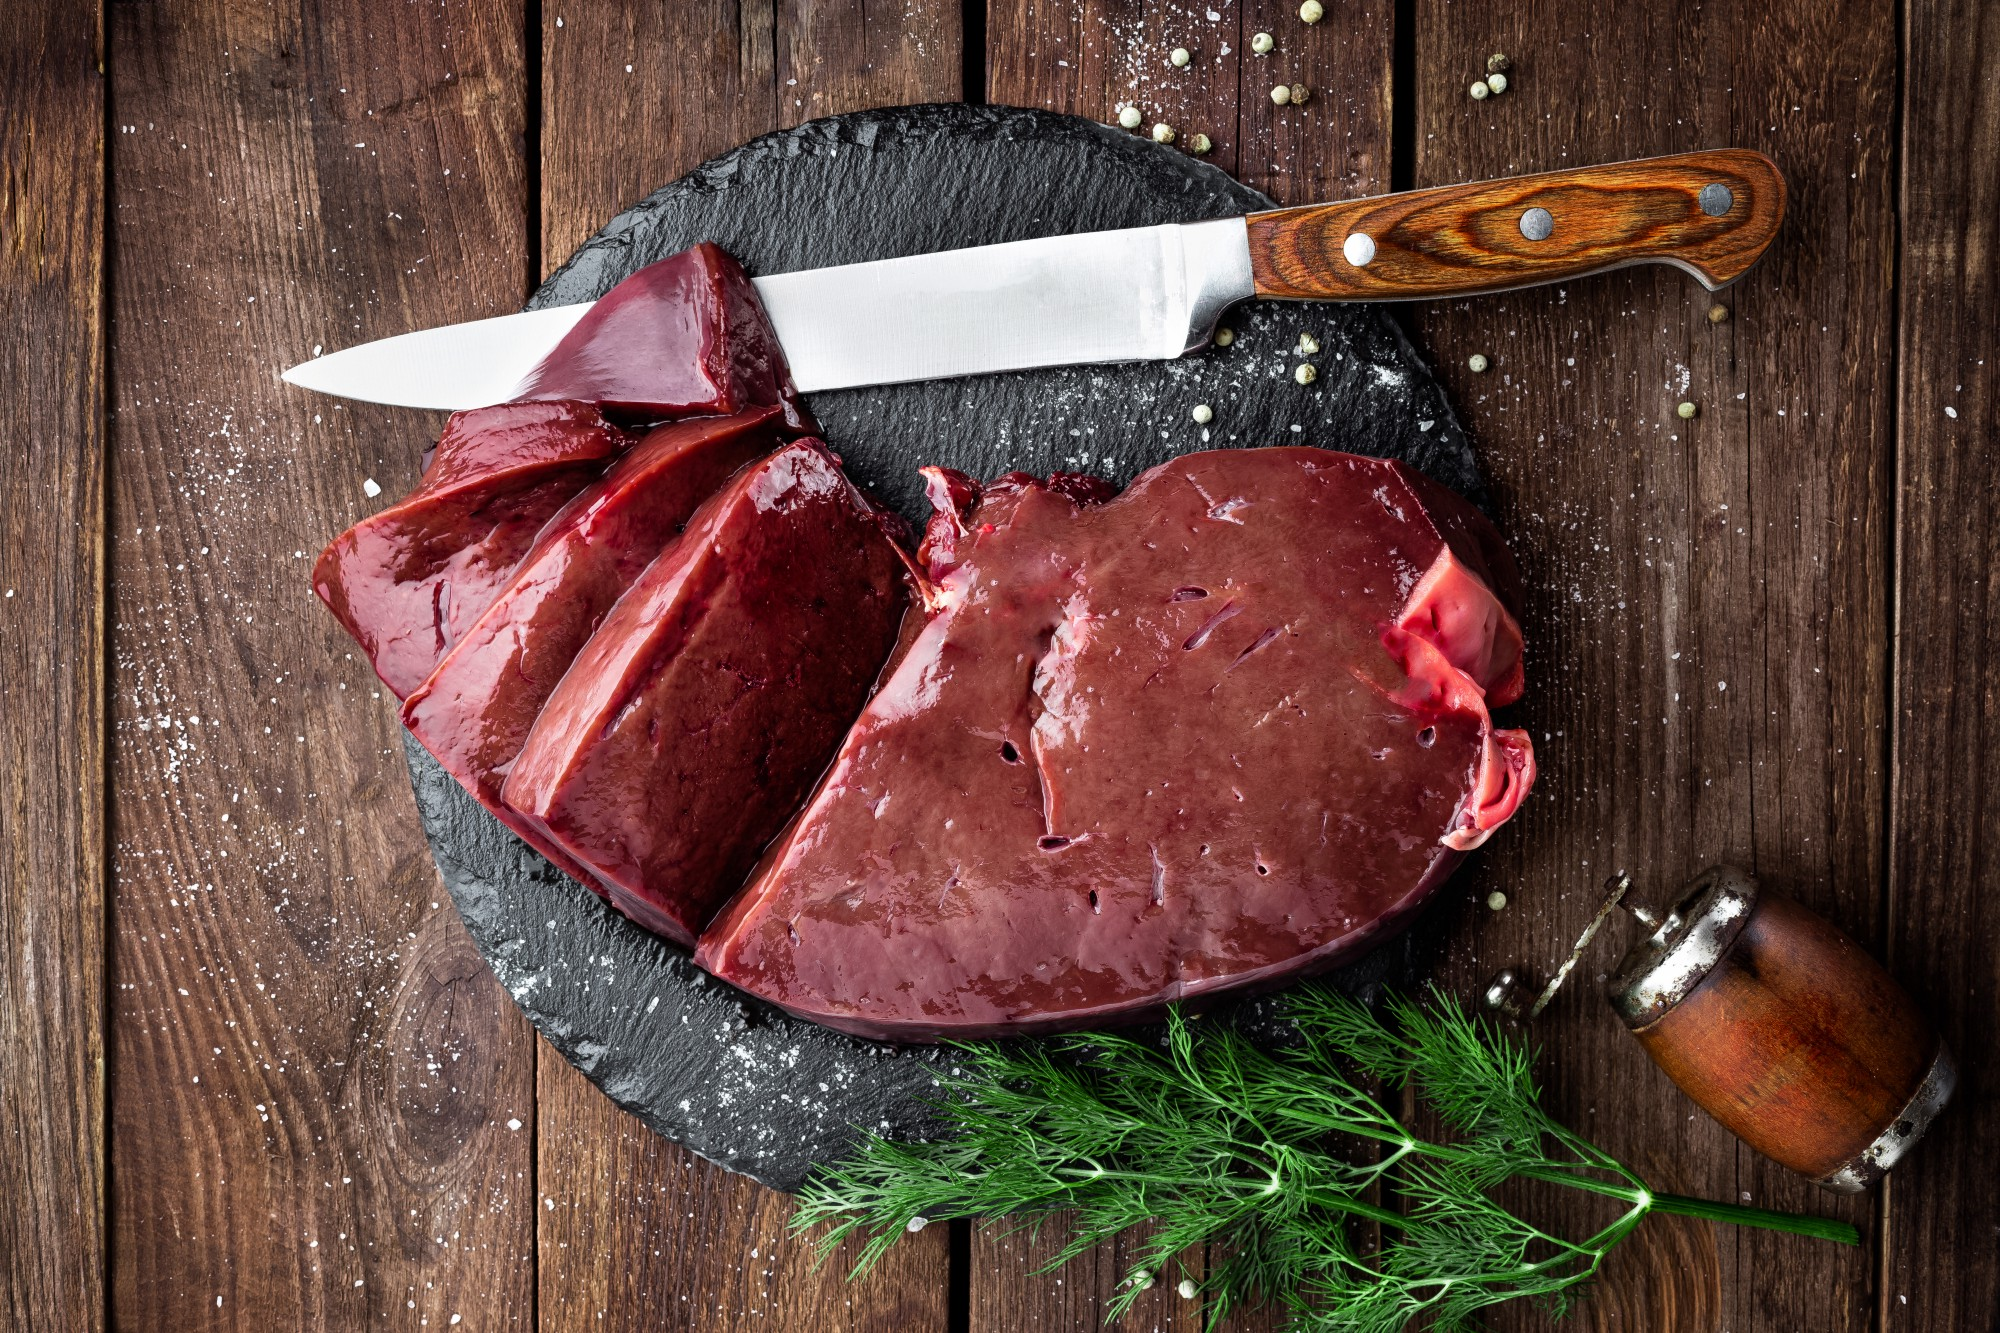 Beef liver being sliced on a black cutting board with wooden plank background.